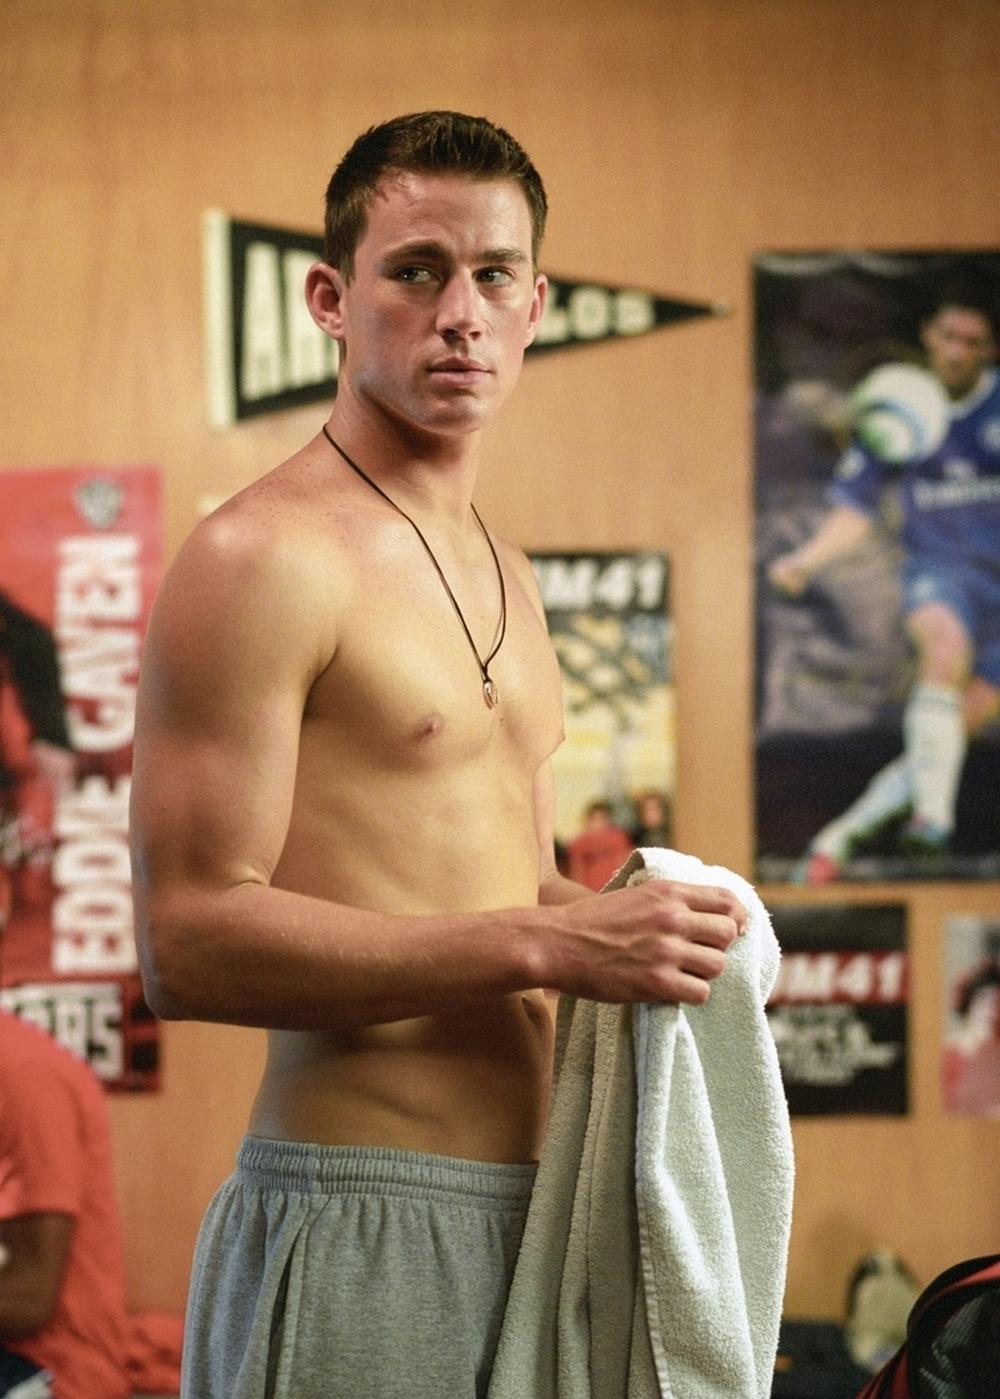 channing tatum wurde am 26. april 1980 in cullman, alabama geboren.